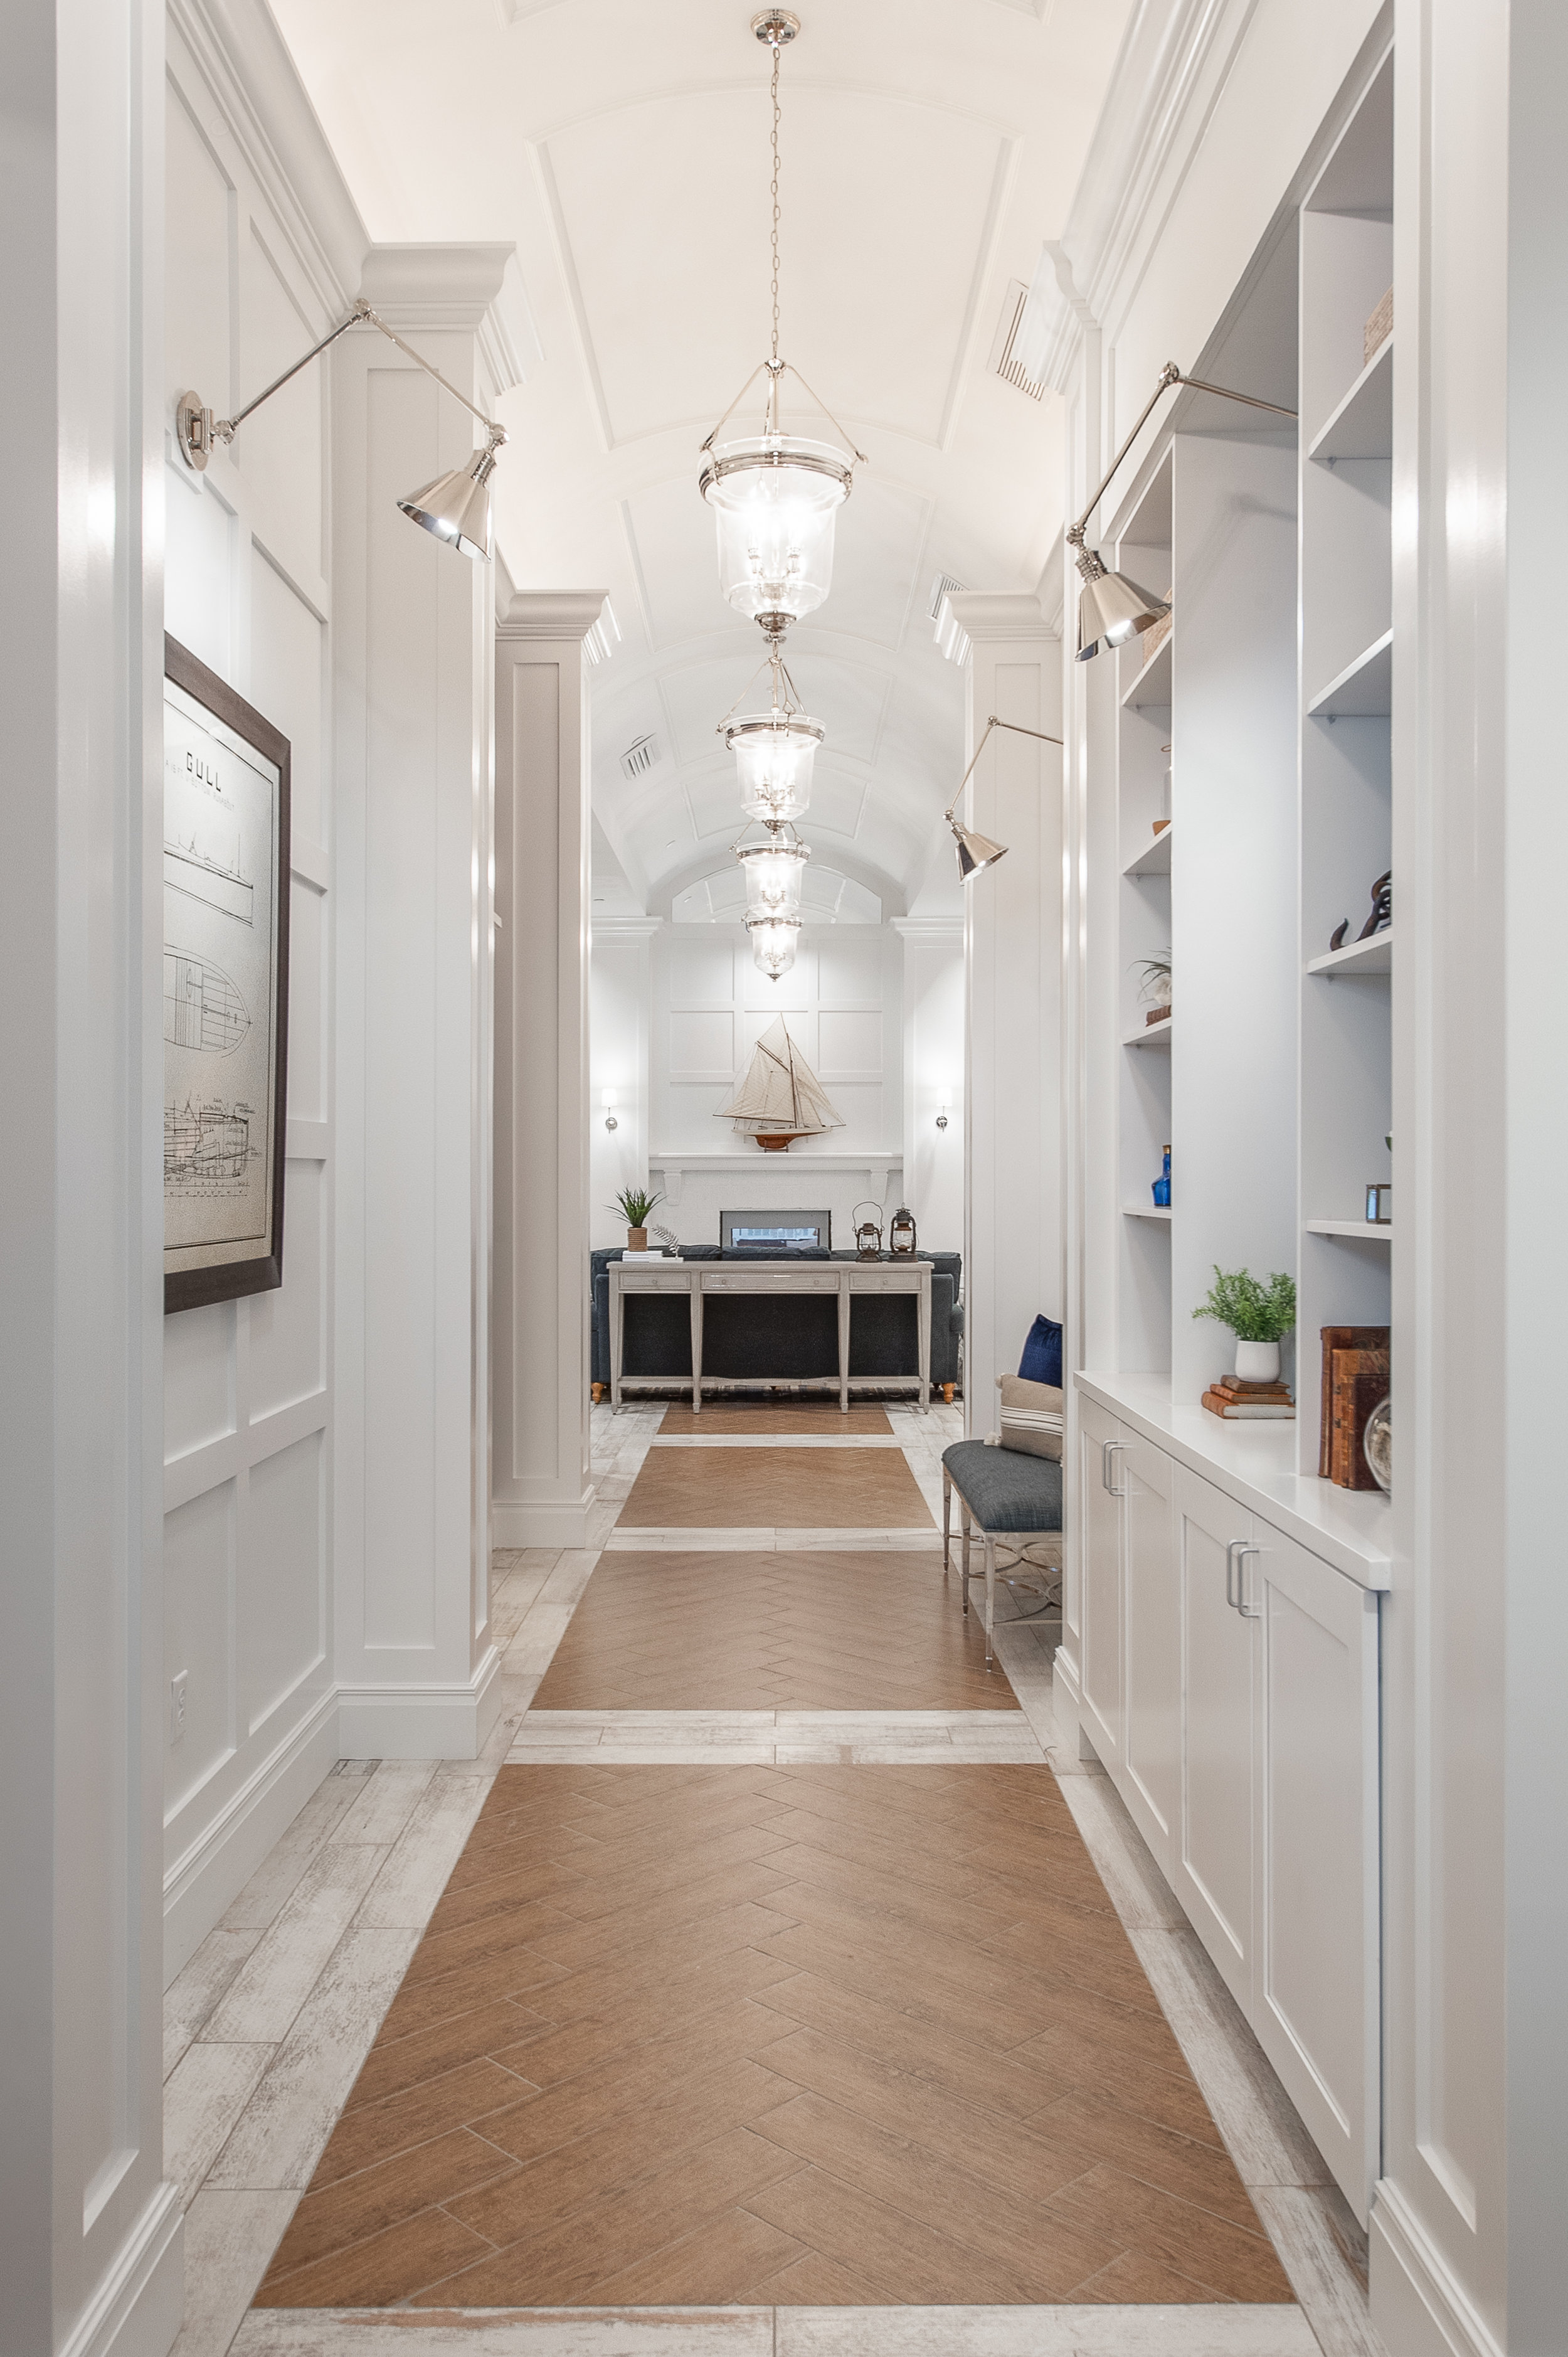 Micamy Design Studio_Interior Design_Beacon Lake_Amenity Center_Clubhouse_New England Style_Nautical_Hallway_Barrel Ceiling_Pendants_Herringbone Tile_Sconces_Ship.jpg